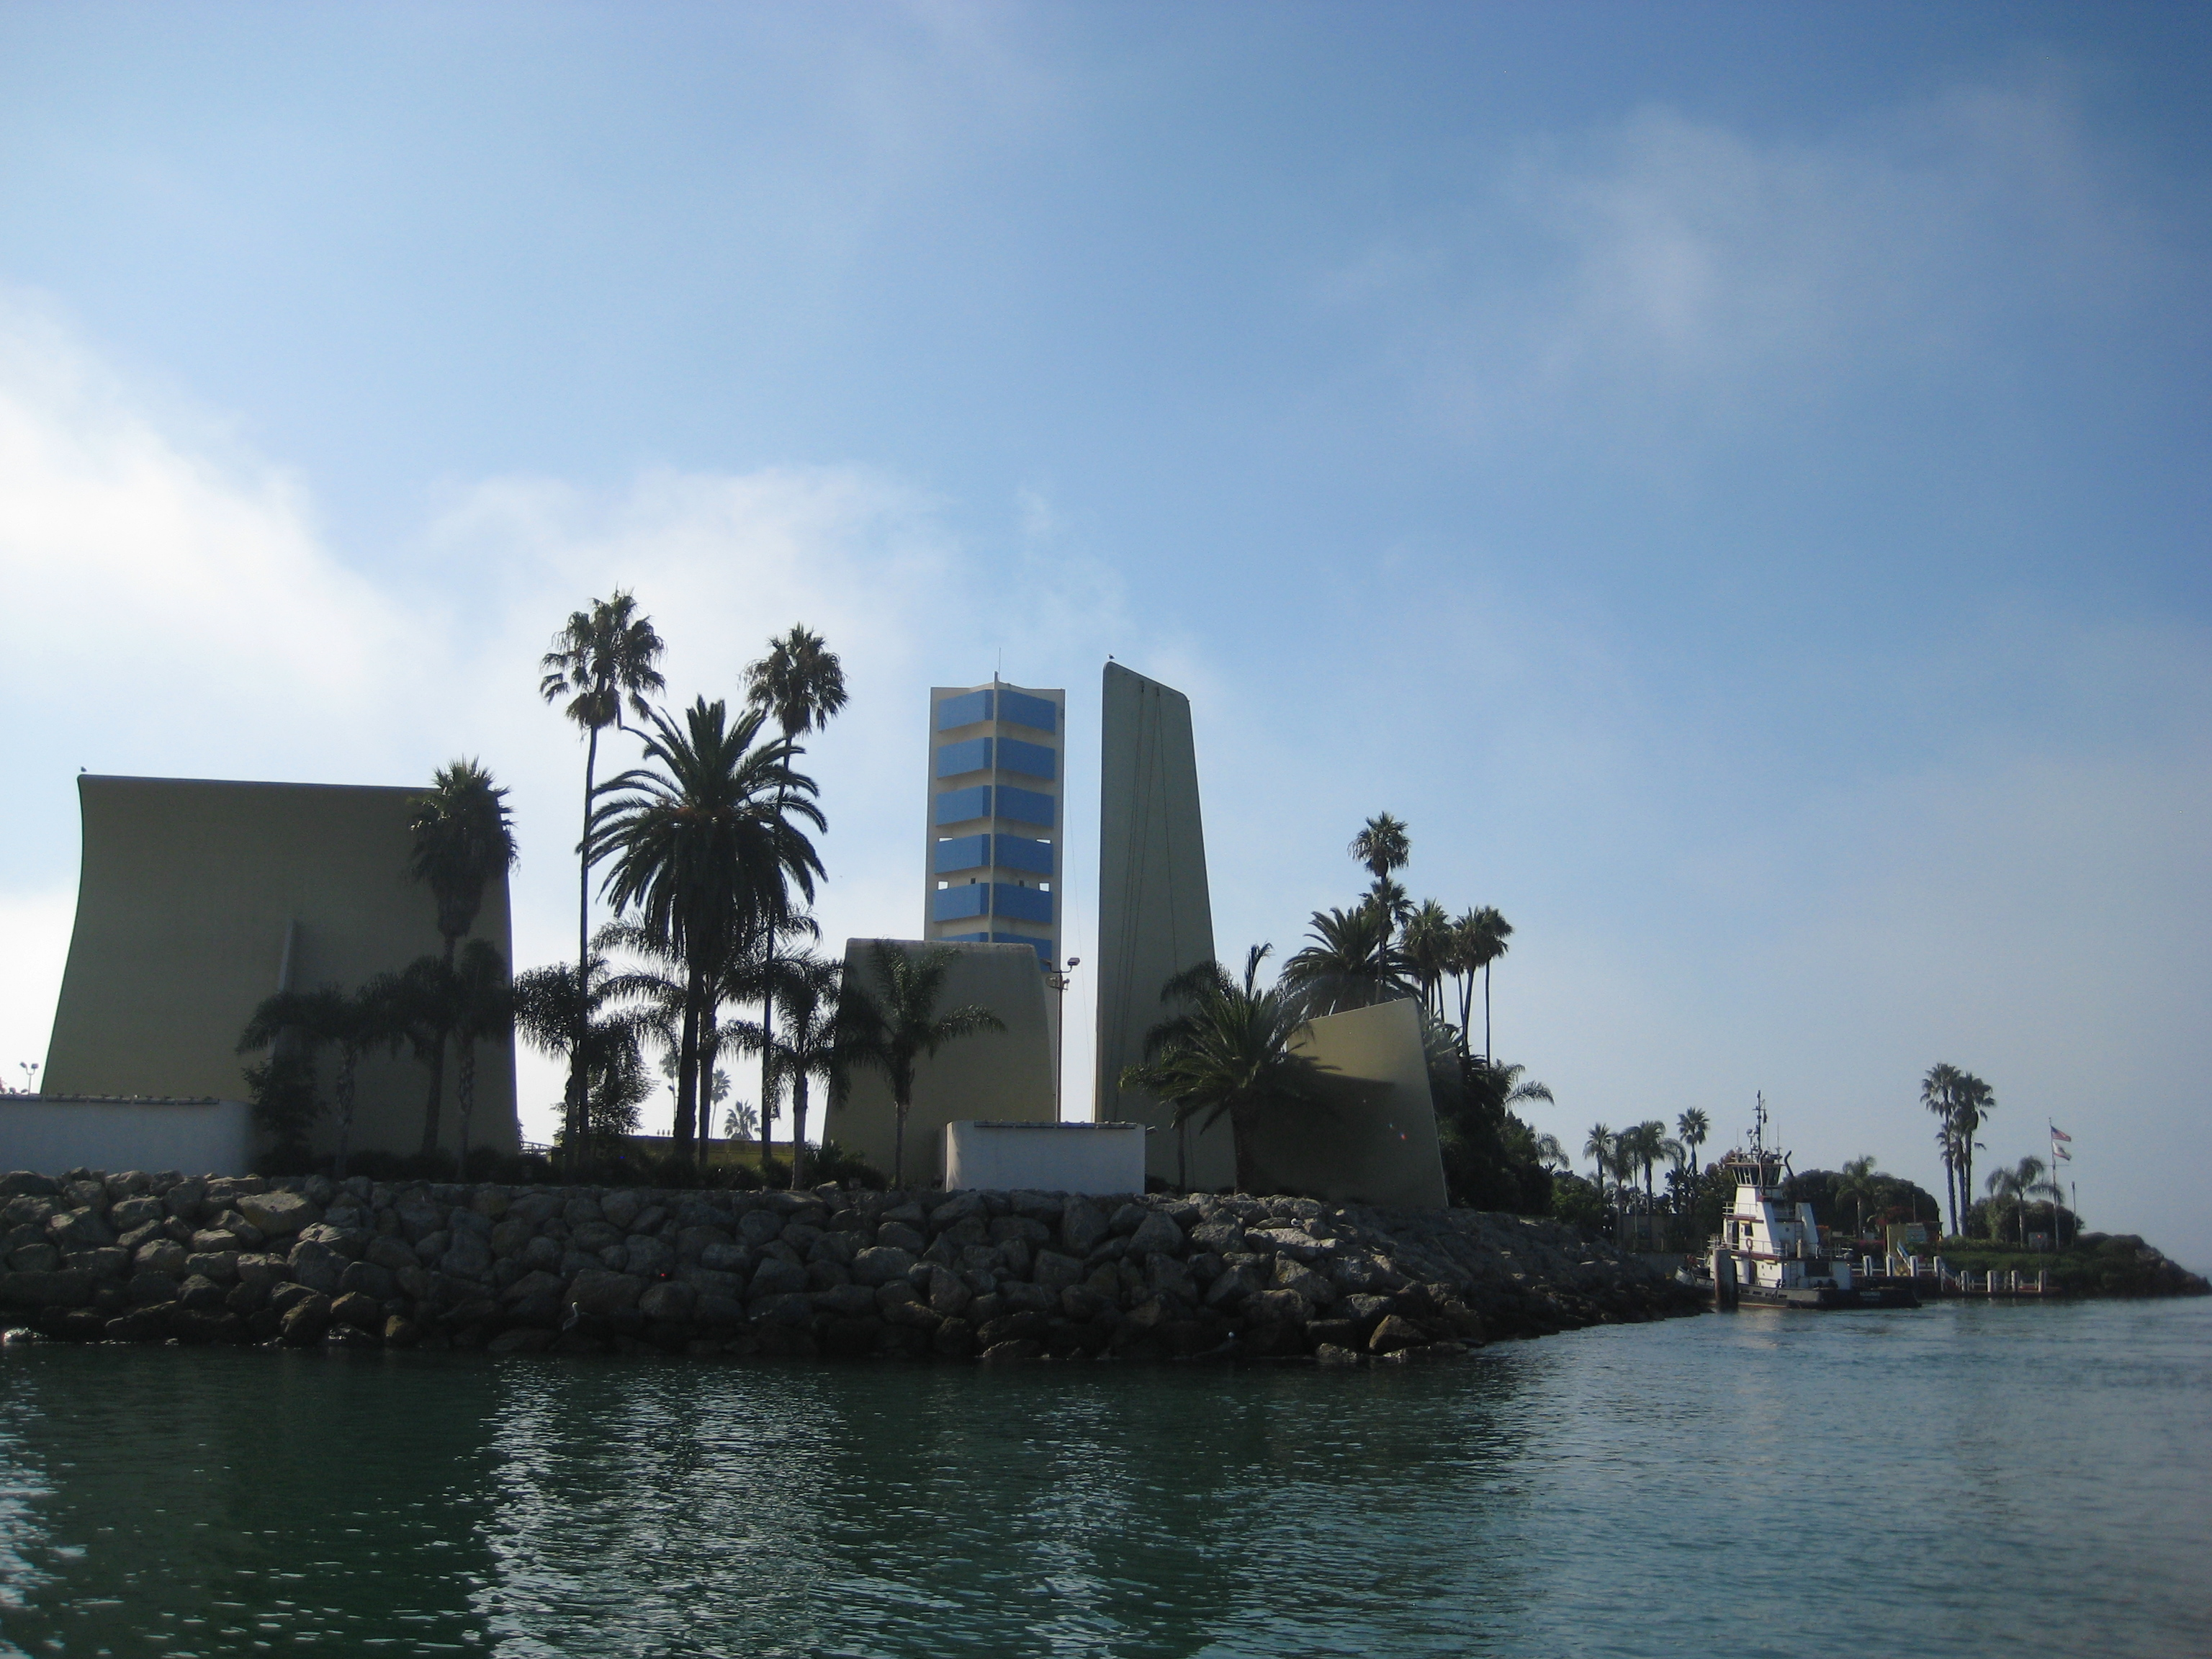 <i>Long Beach Harbor, ruined by the THUMS island development.</i>